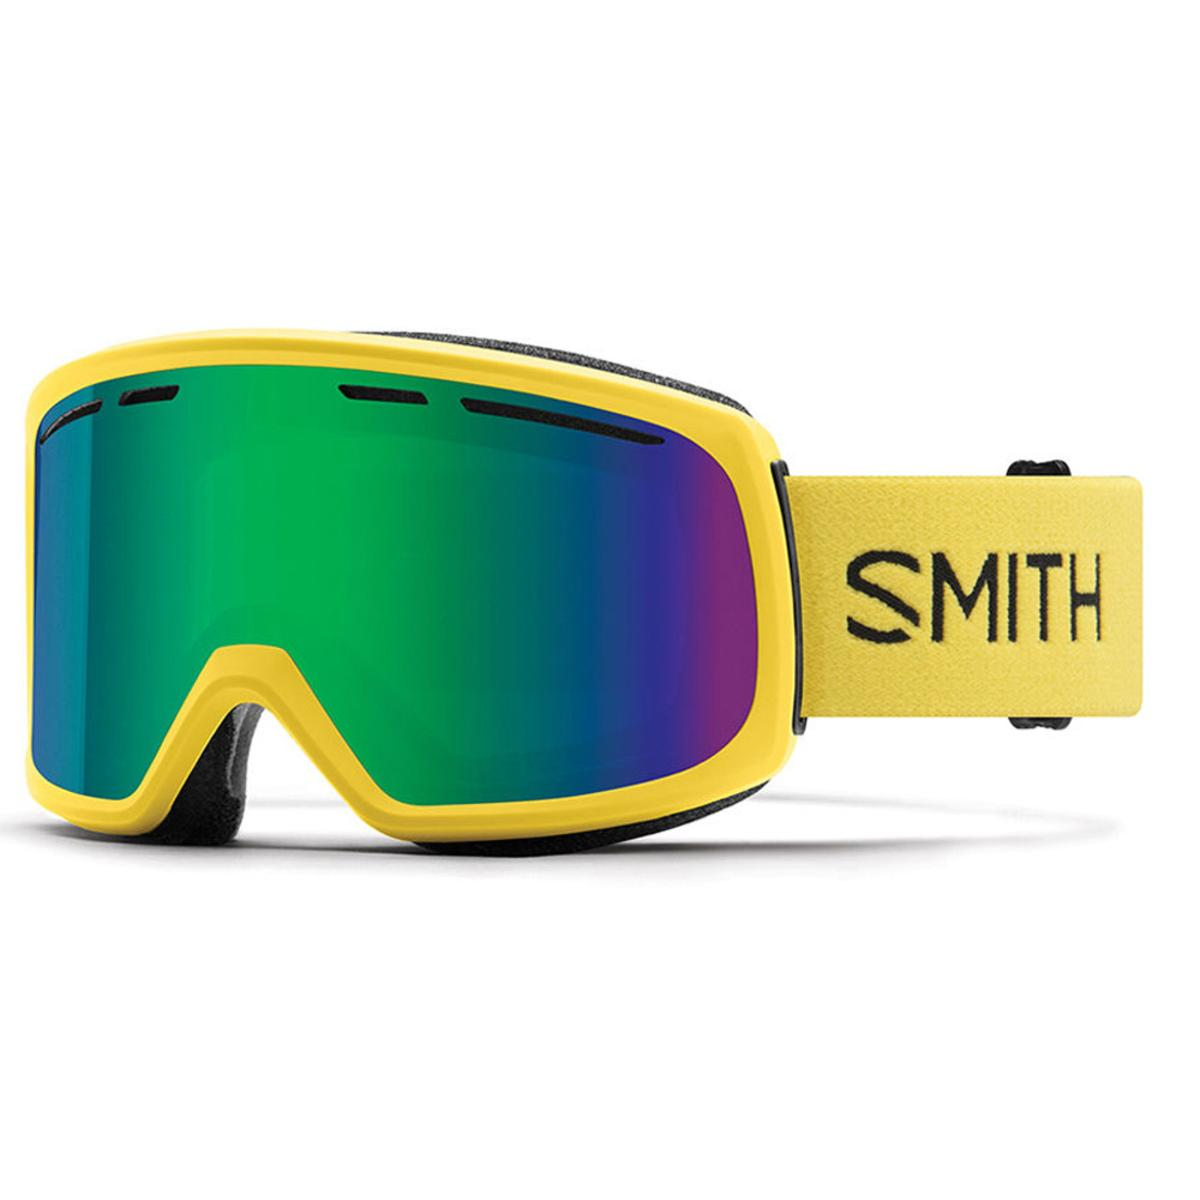 36322576a1207 Smith Optics Range Snow Goggles - Citron Frame - The Warming Store